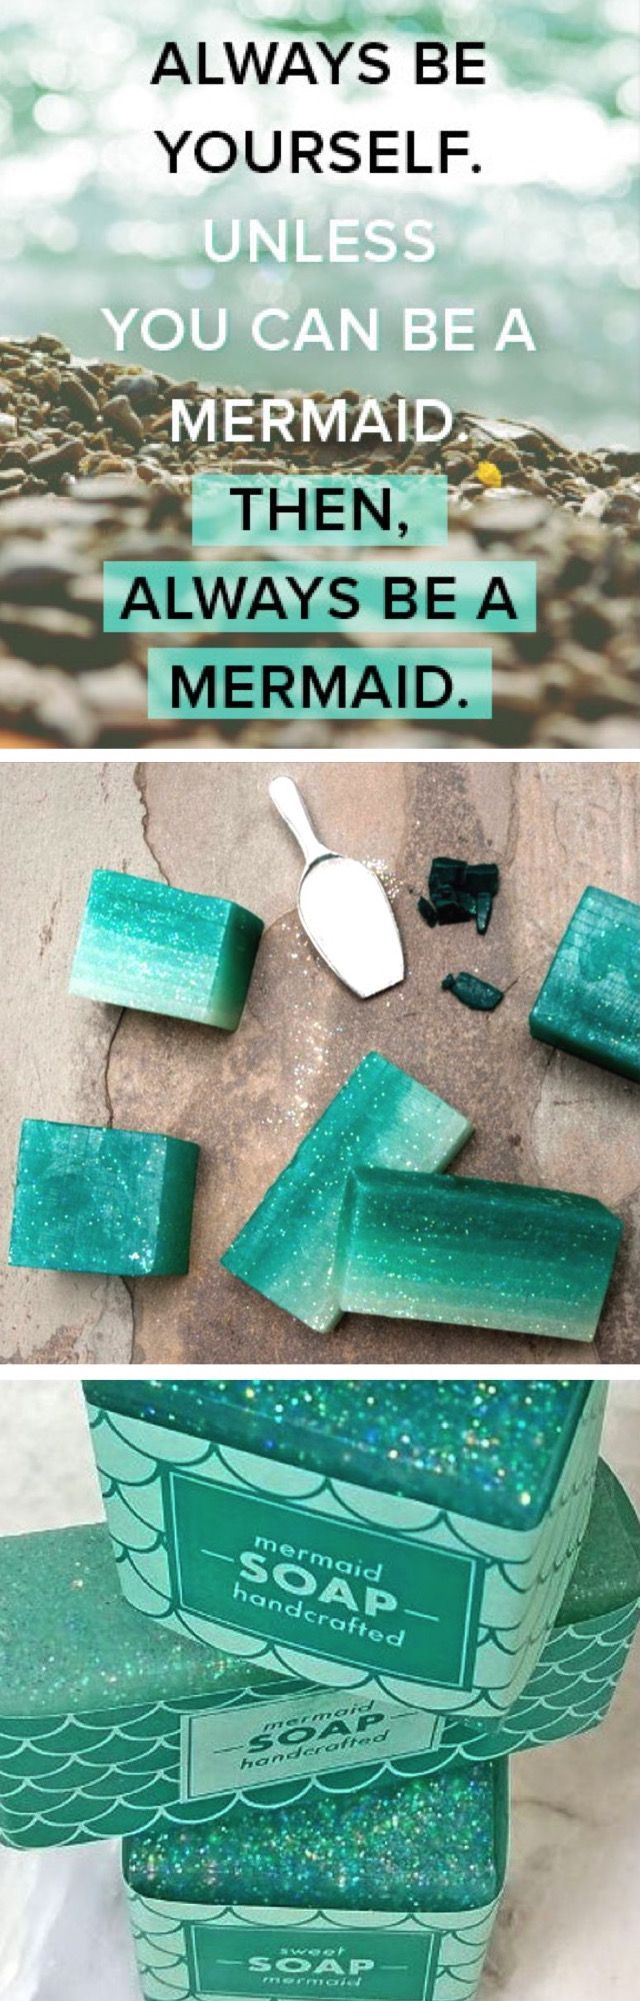 Handcrafted Mermaid Ombre Soap DIY Kit. Creative and quirky birthday gift ideas, beauty finds and more on Darby Smart.